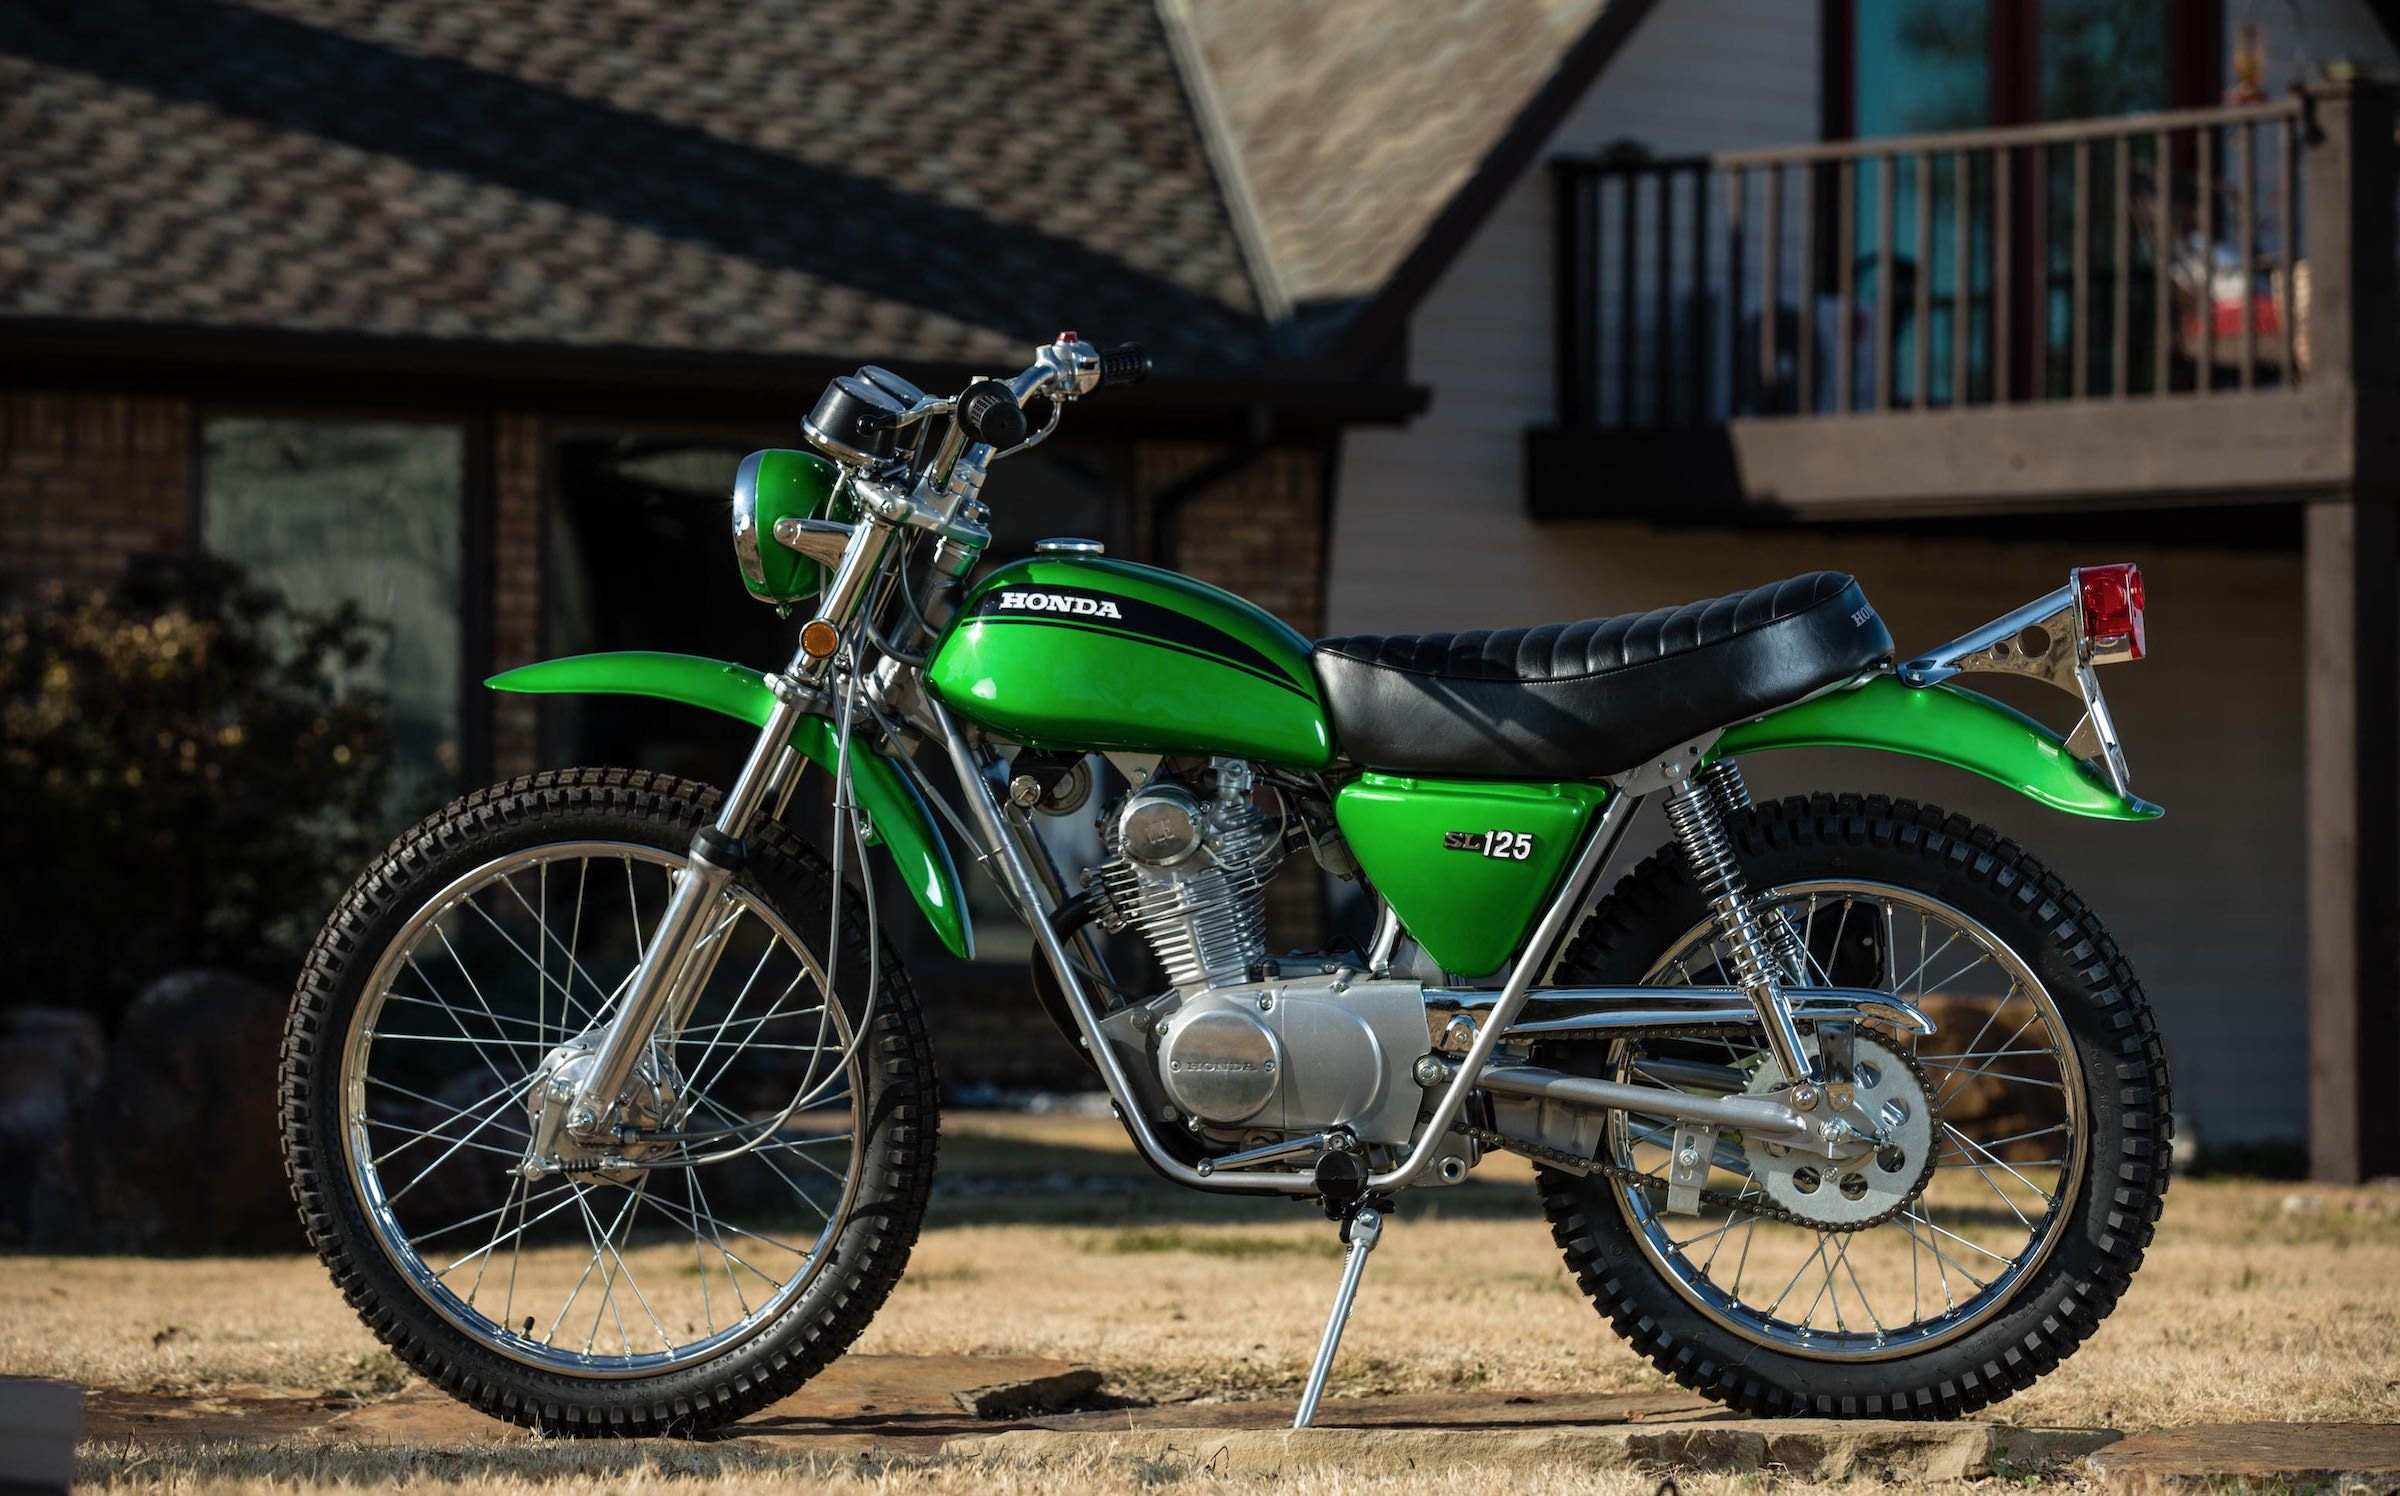 For Sale: A Complete Collection Of 1971 Honda SL Motosport